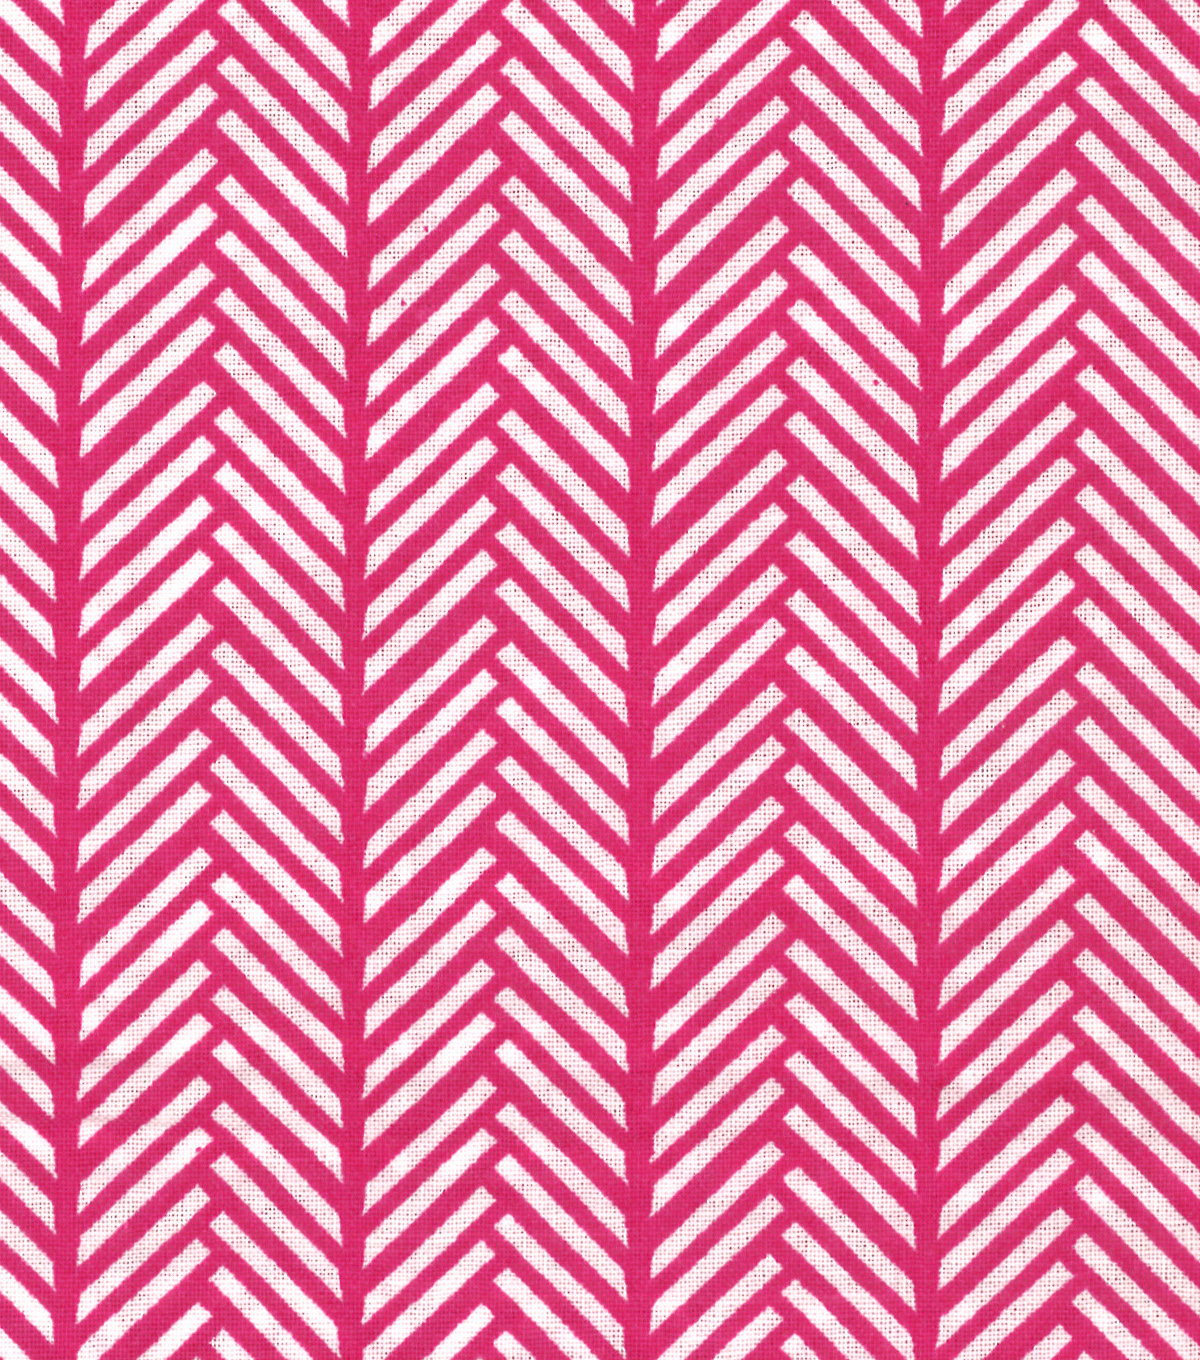 Quilter\u0027s Showcase™ Cotton Fabric 44\u0027\u0027-Linear Arrows on Pink